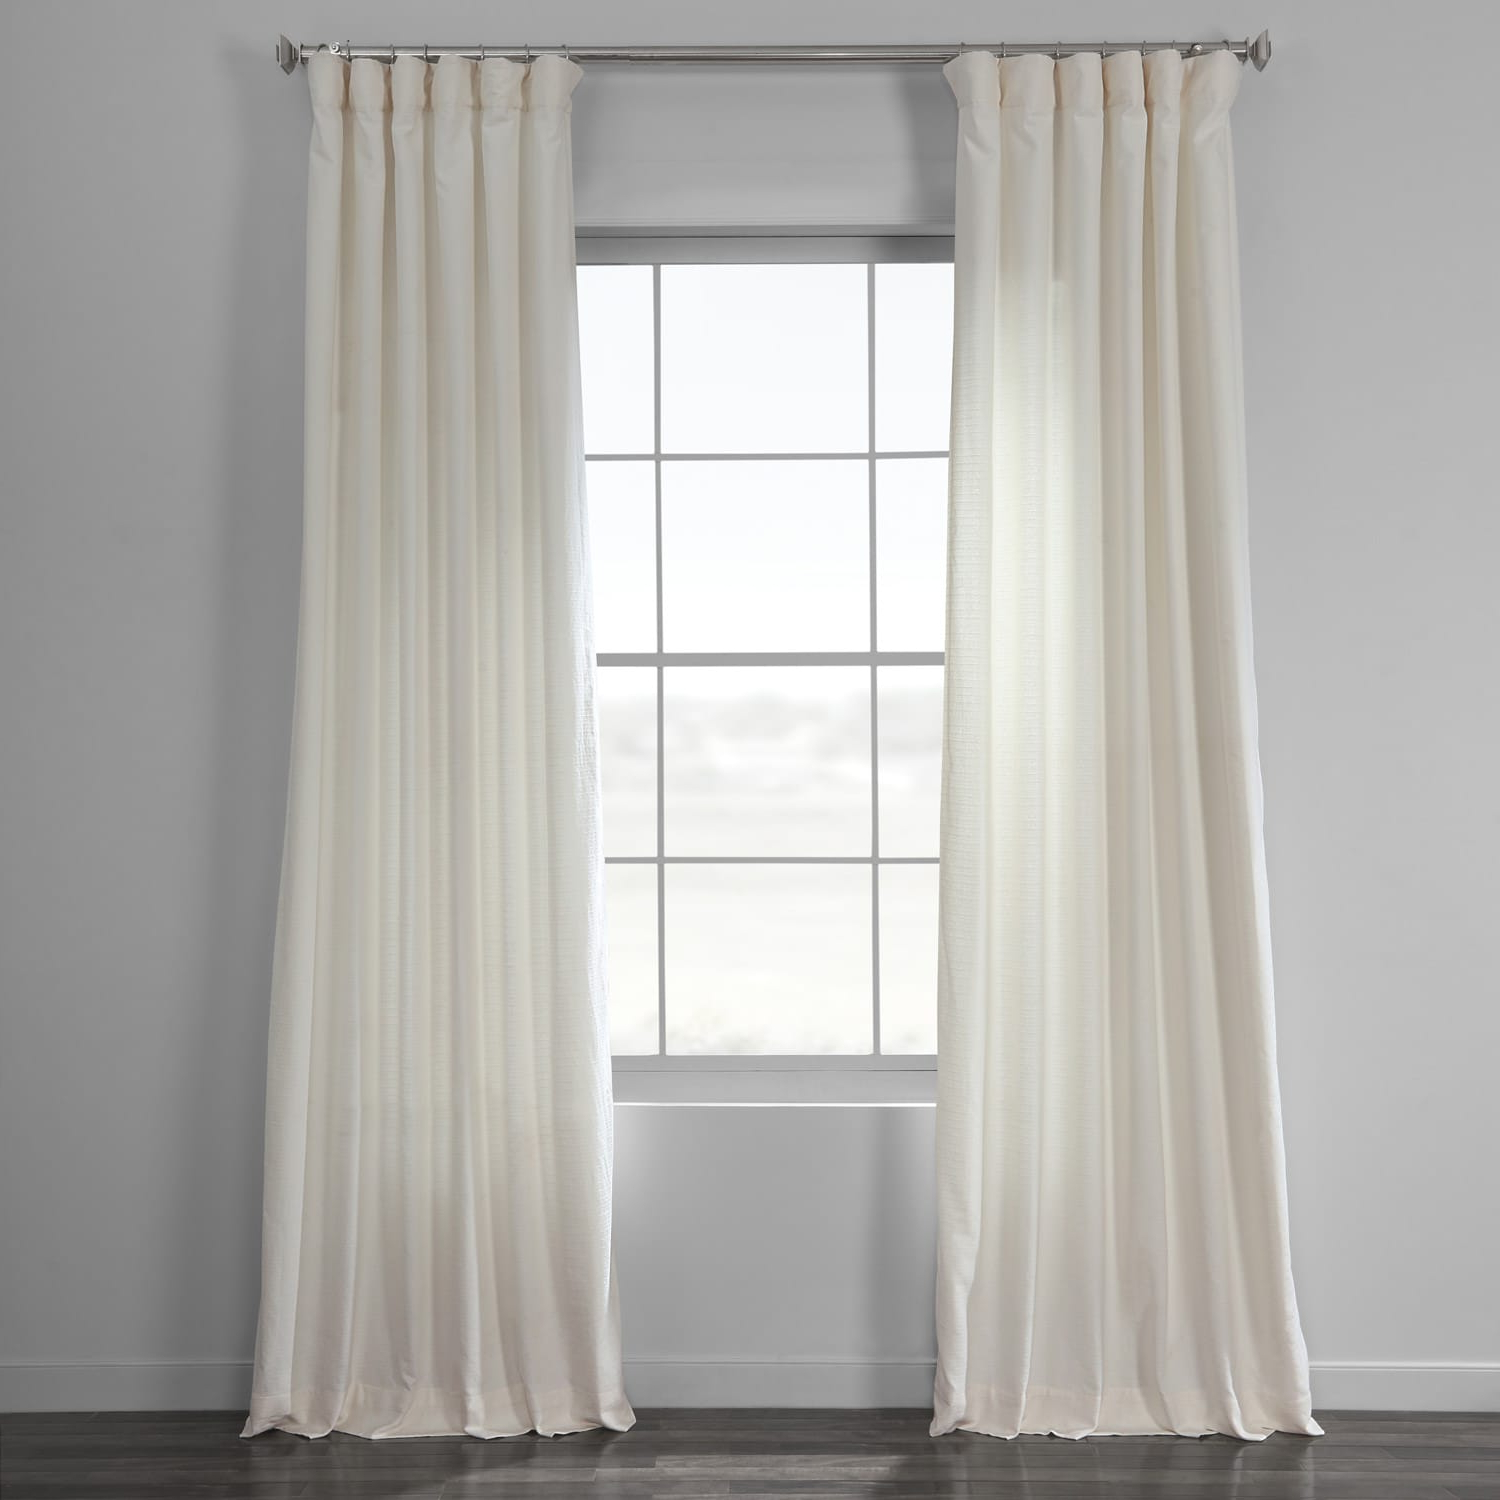 Birch Bark Weave Solid Cotton Curtain With Recent Solid Cotton Pleated Curtains (View 4 of 20)